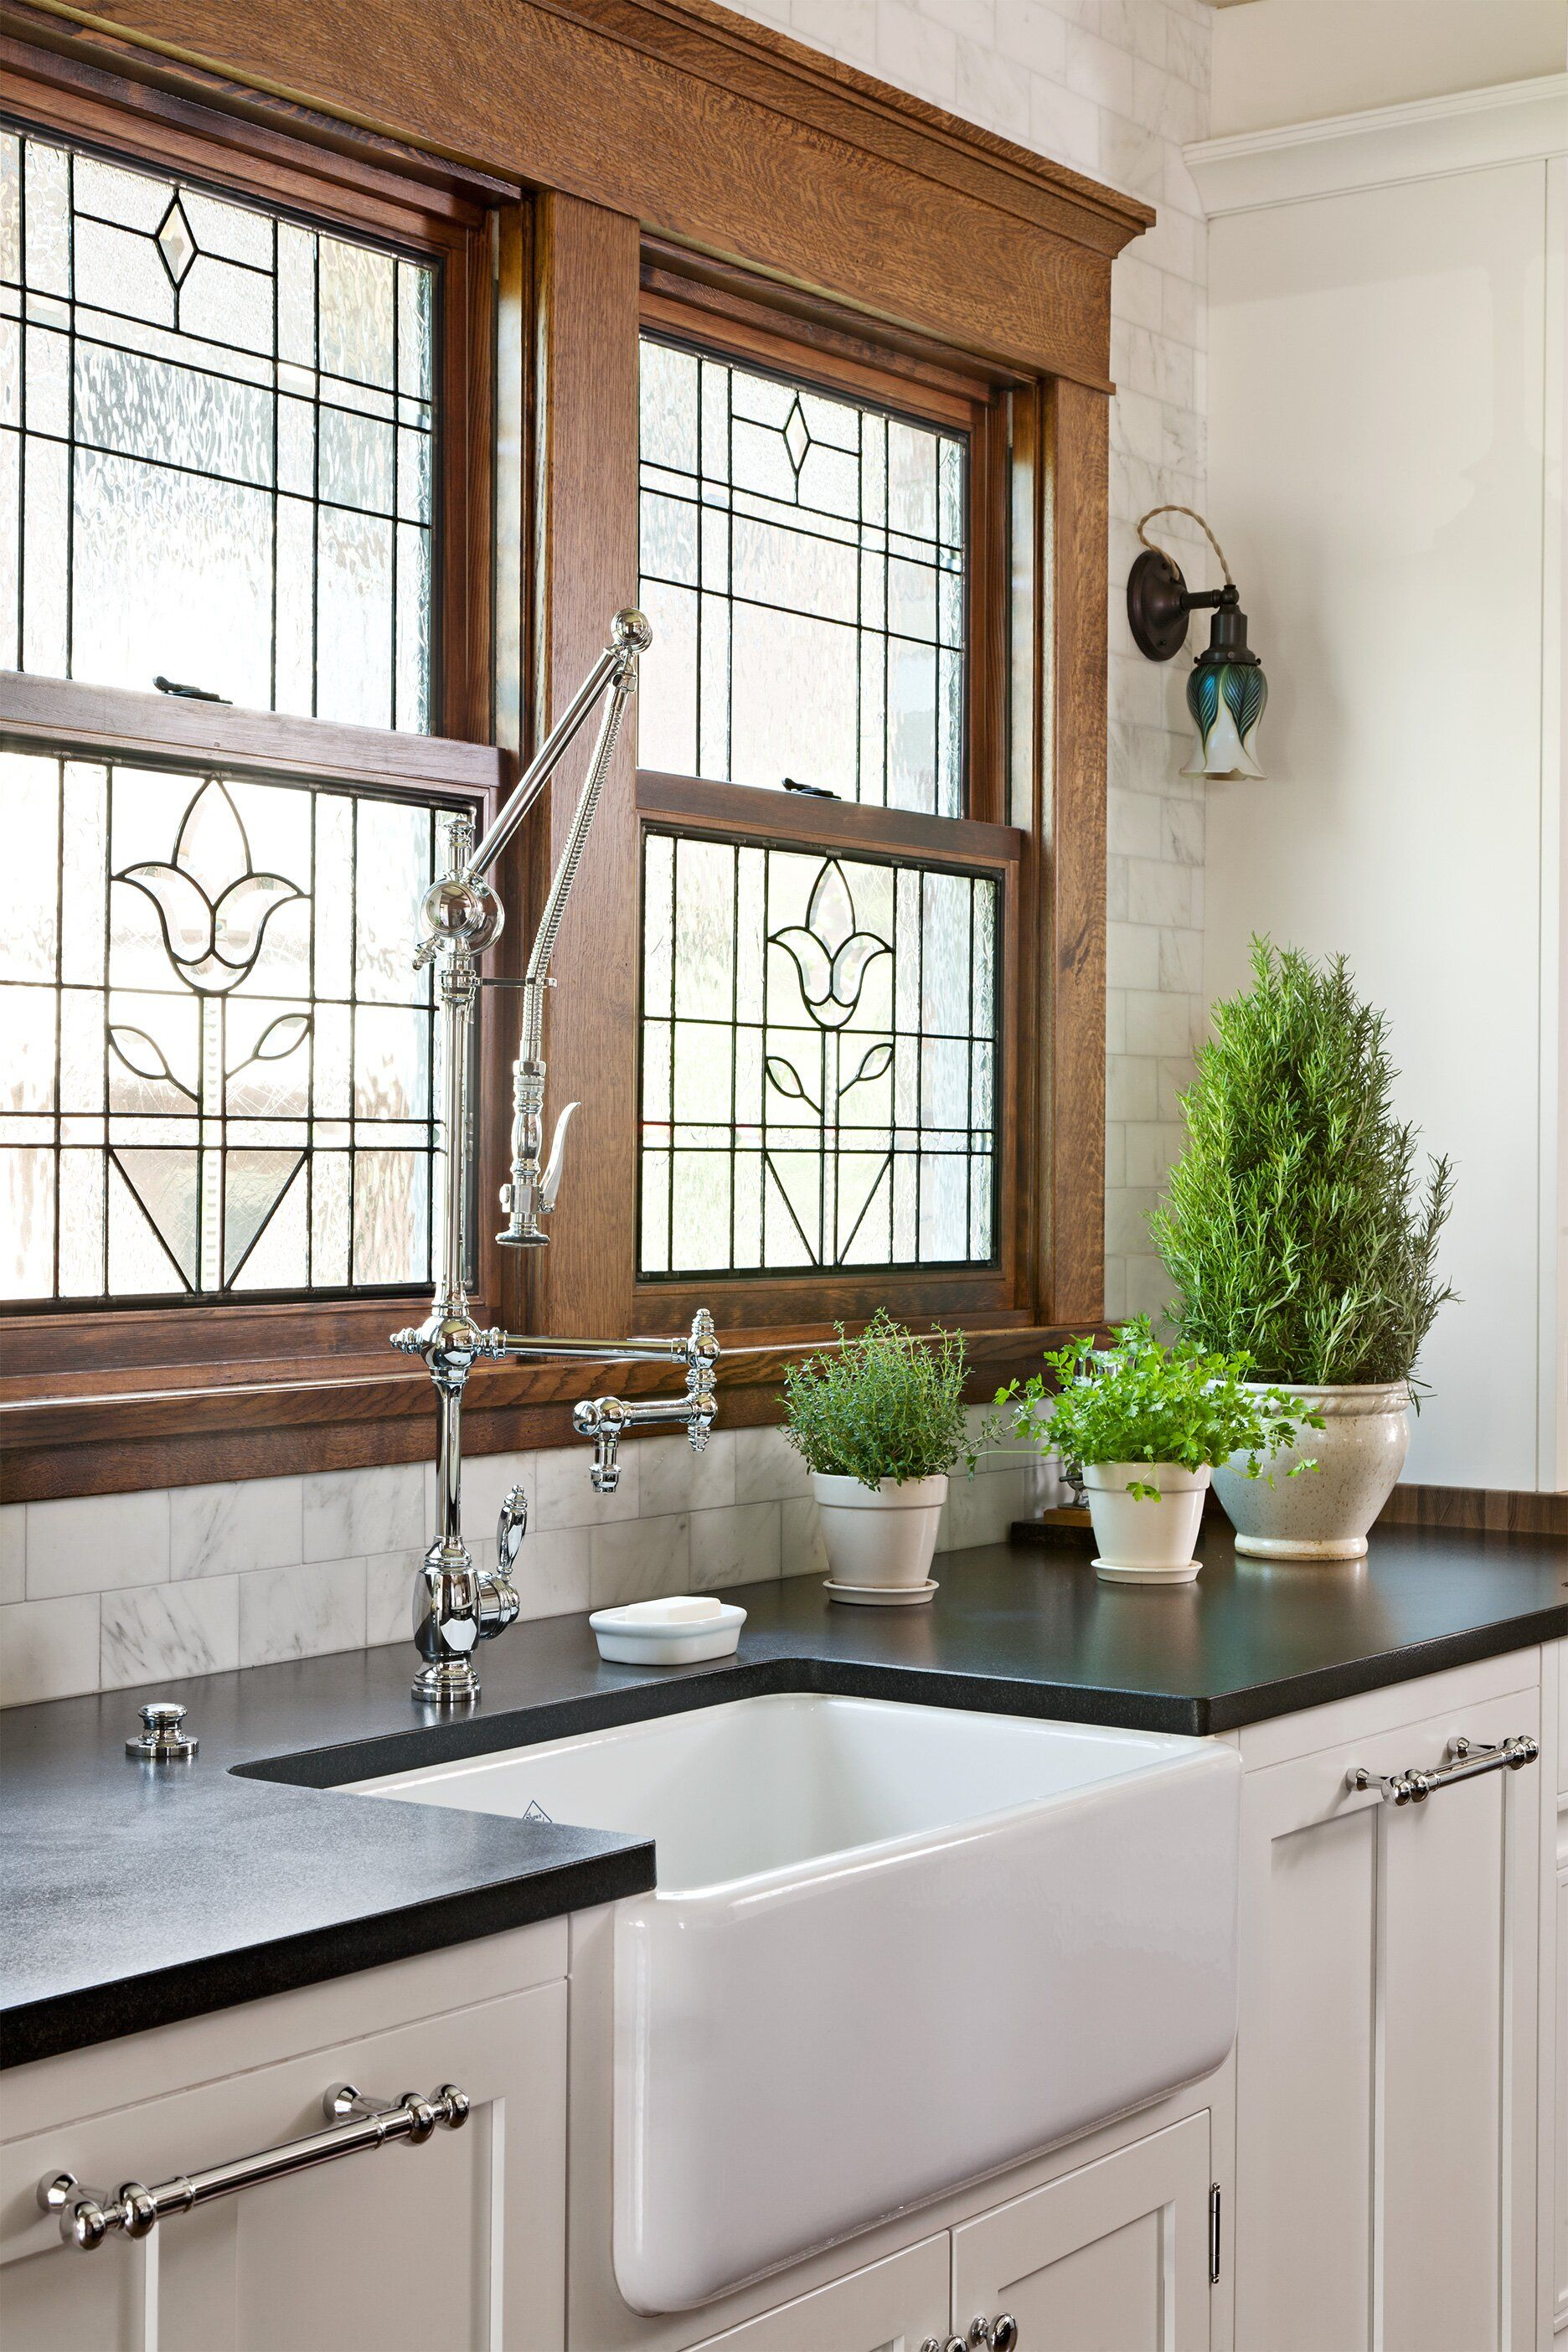 17 Rustic Window Treatments You'll Want to Try Now in 2020 ...